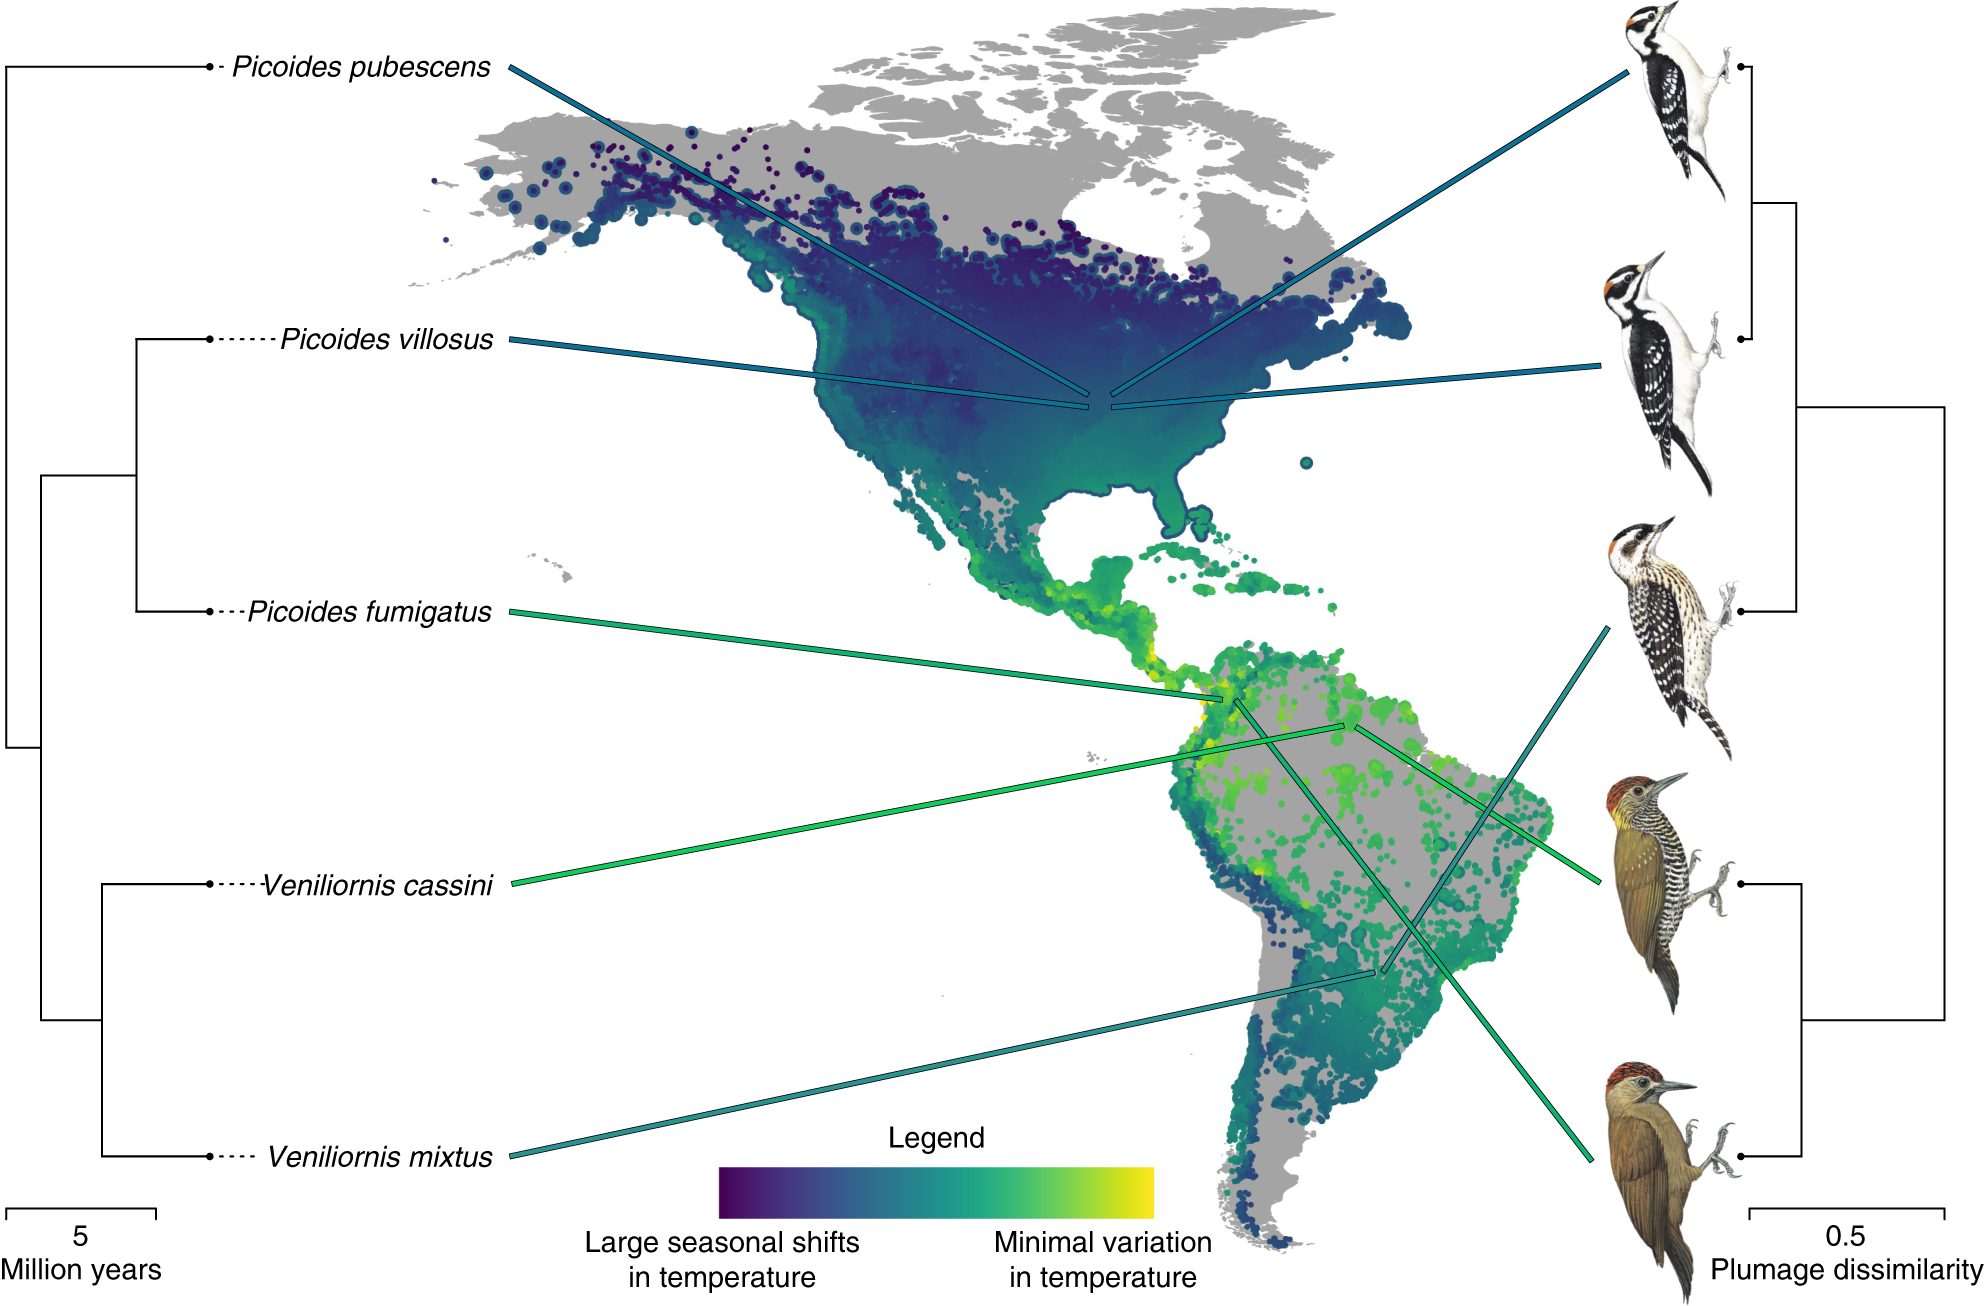 Ecological and geographical overlap drive plumage evolution